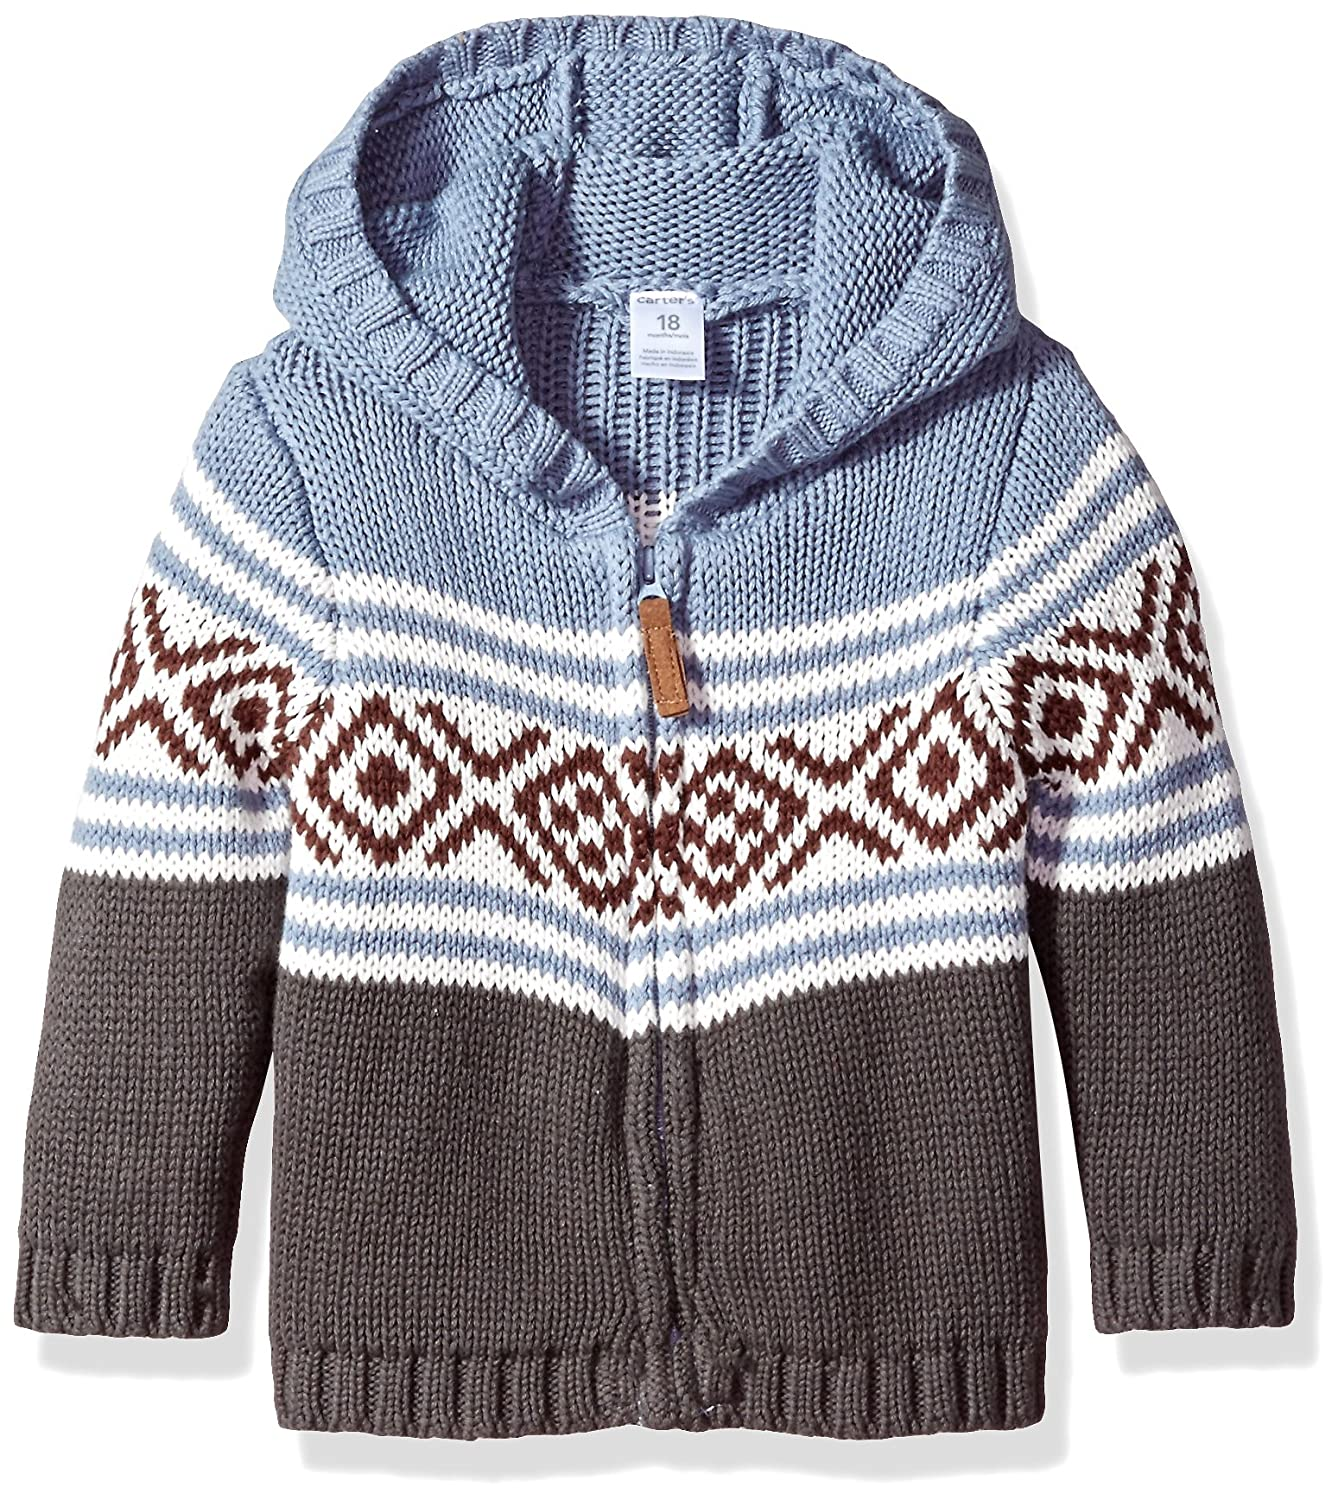 Carter's Baby Boys' Layering Carters